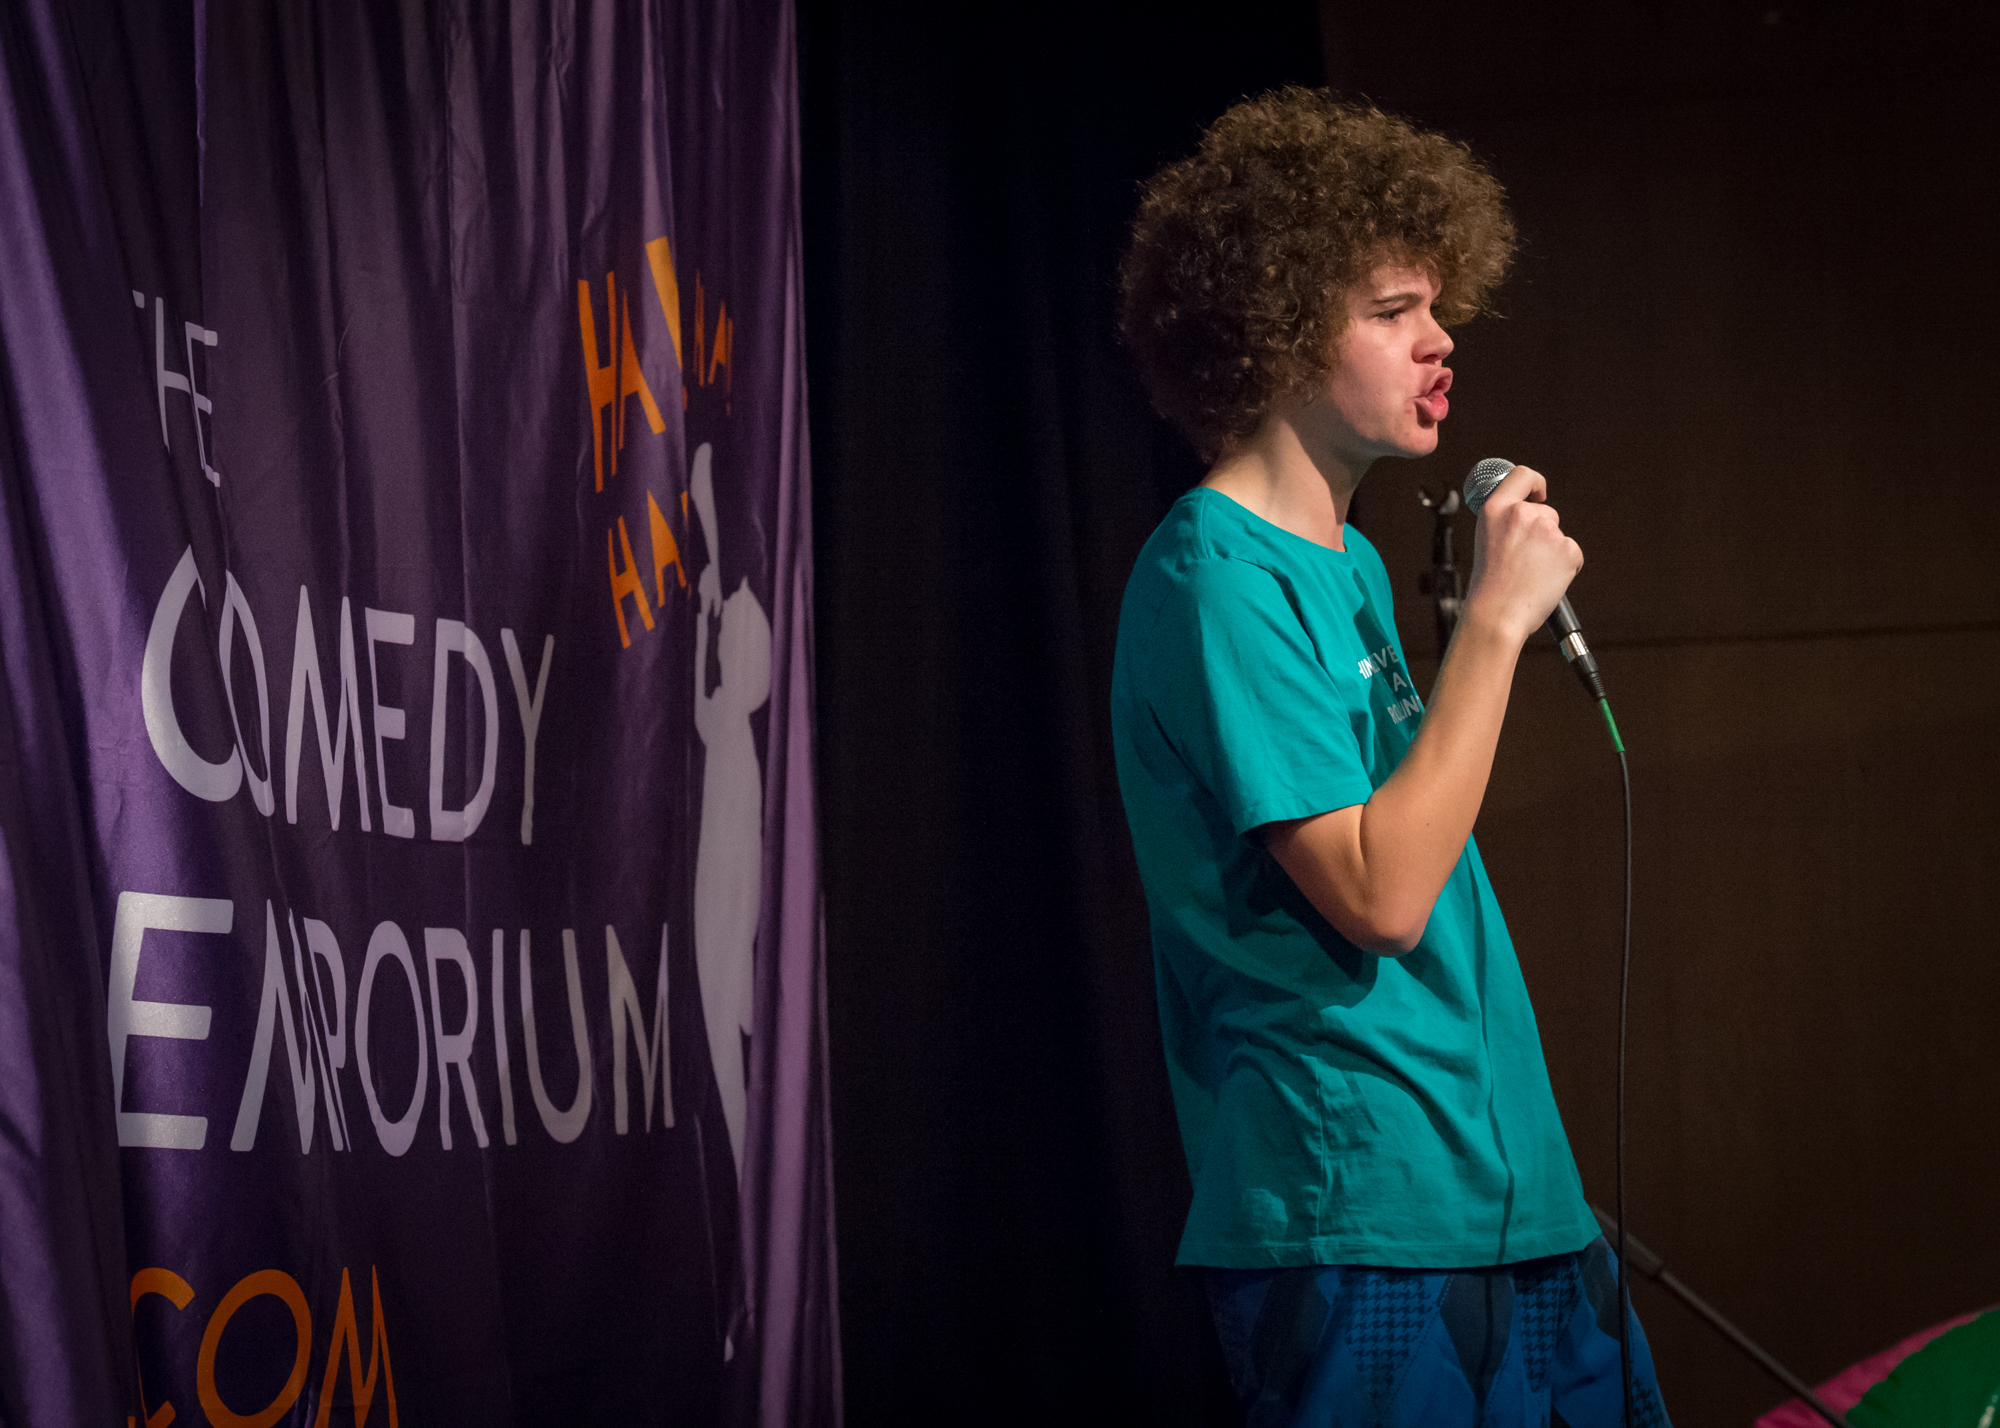 Jackson Canny performs at The Comedy Emporium's 2015 Beach Party Show